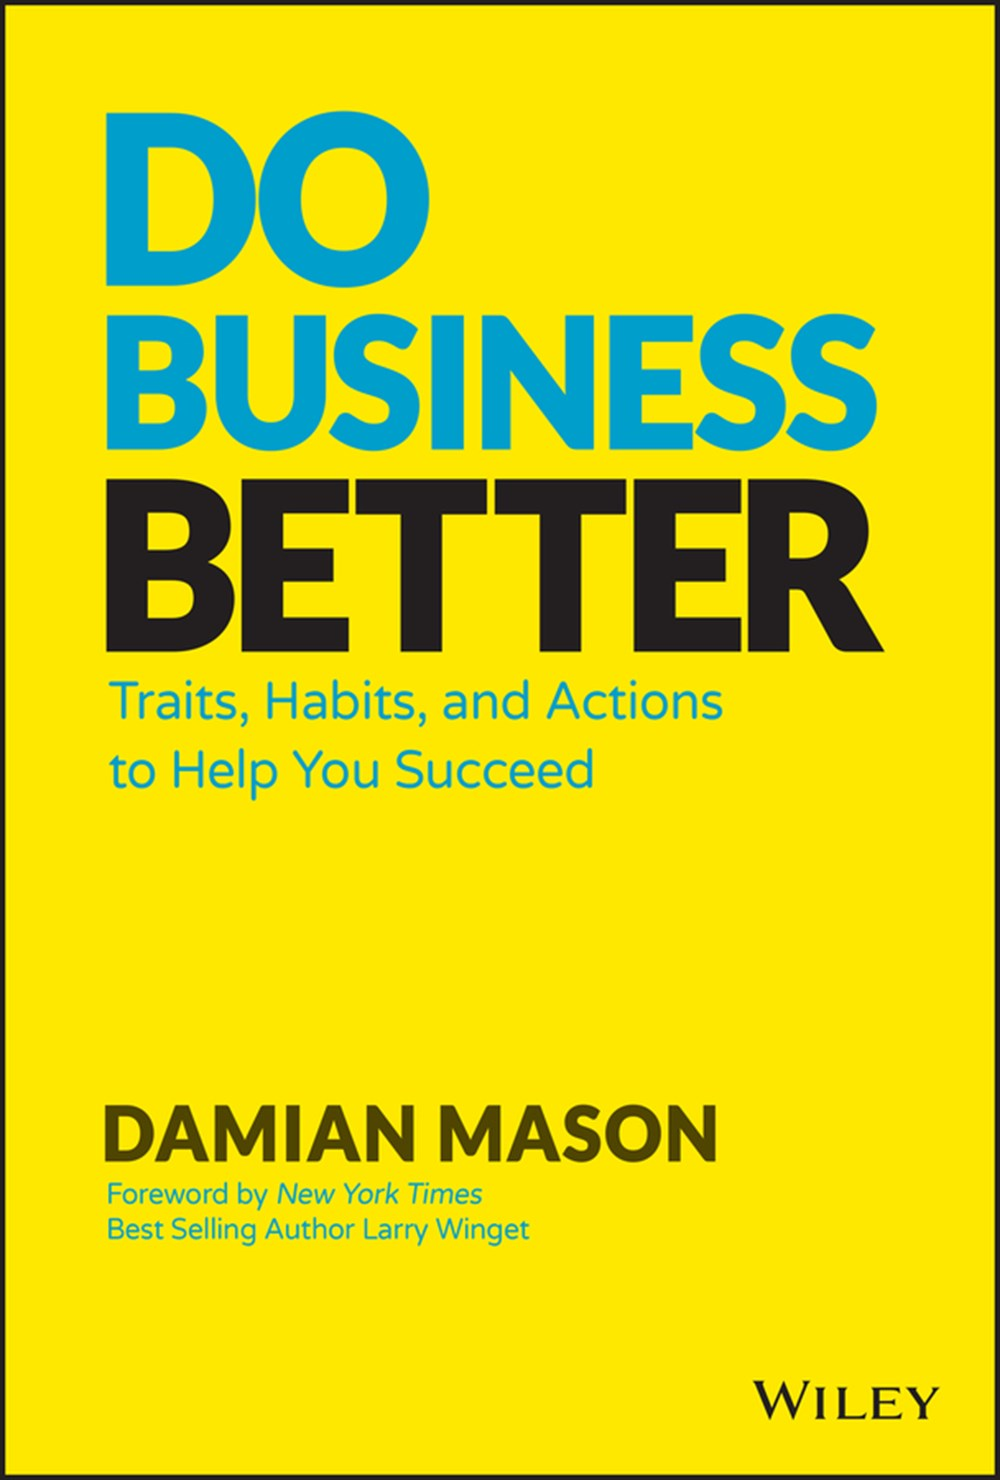 Do Business Better Traits, Habits, and Actions to Help You Succeed